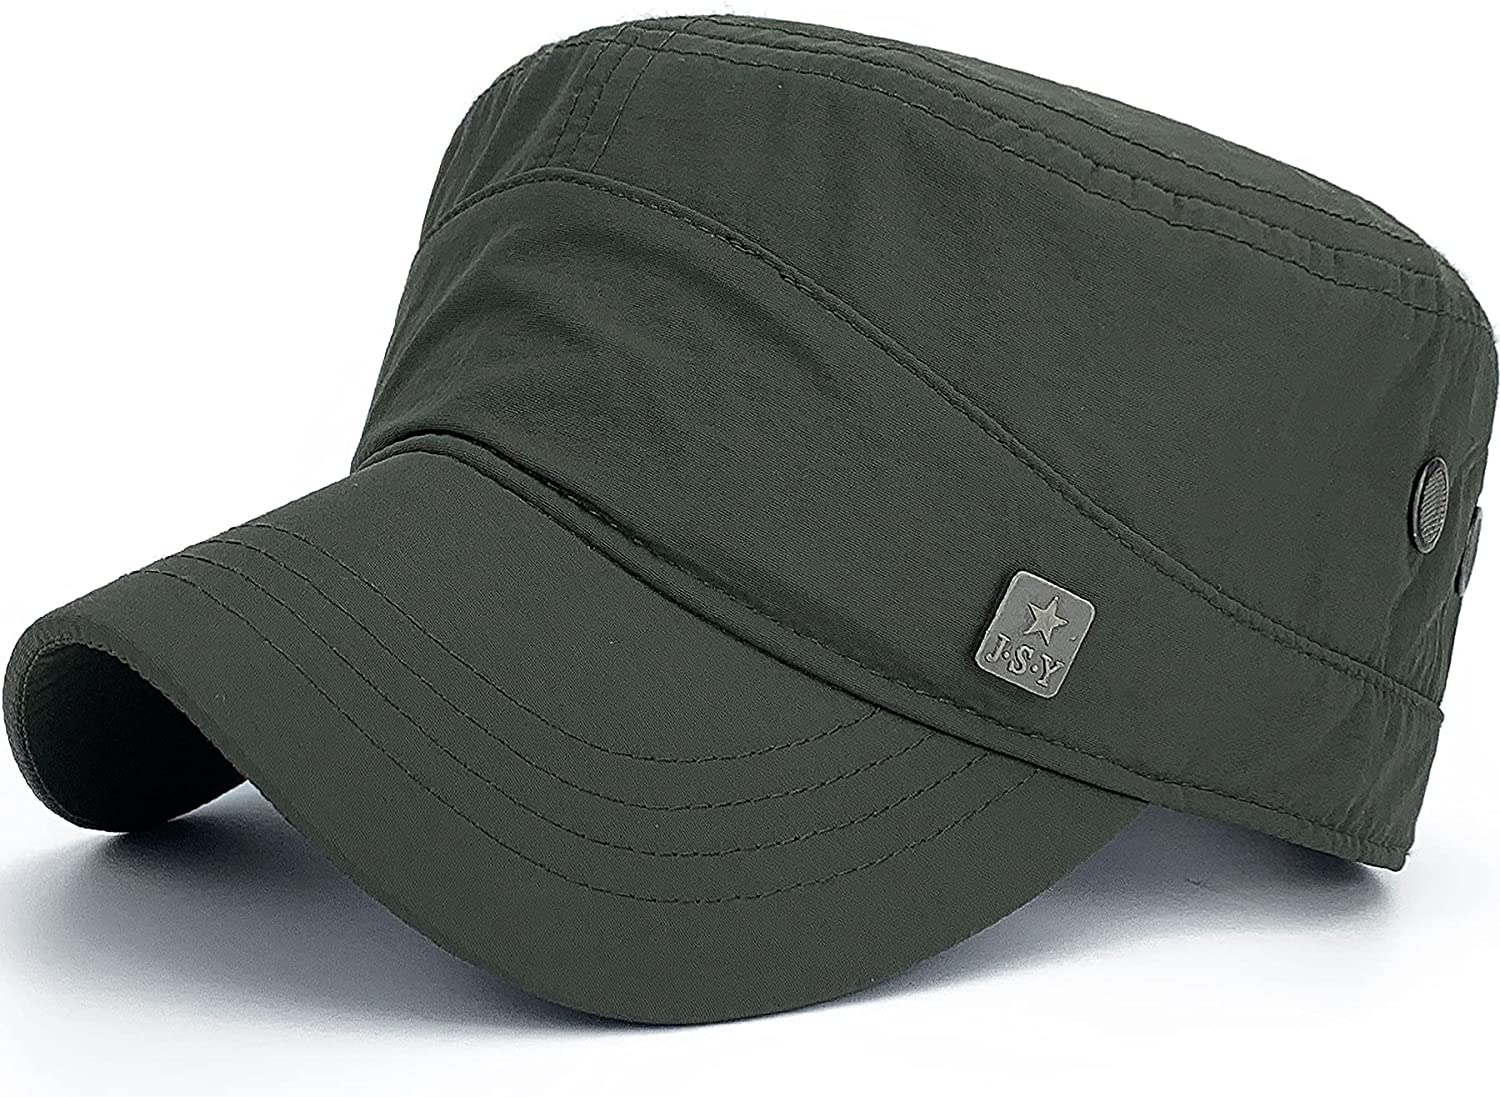 Rayna Fashion Quick Charlotte Mall Dry Max 50% OFF Cadet Waterproof Flat Army Hats Military